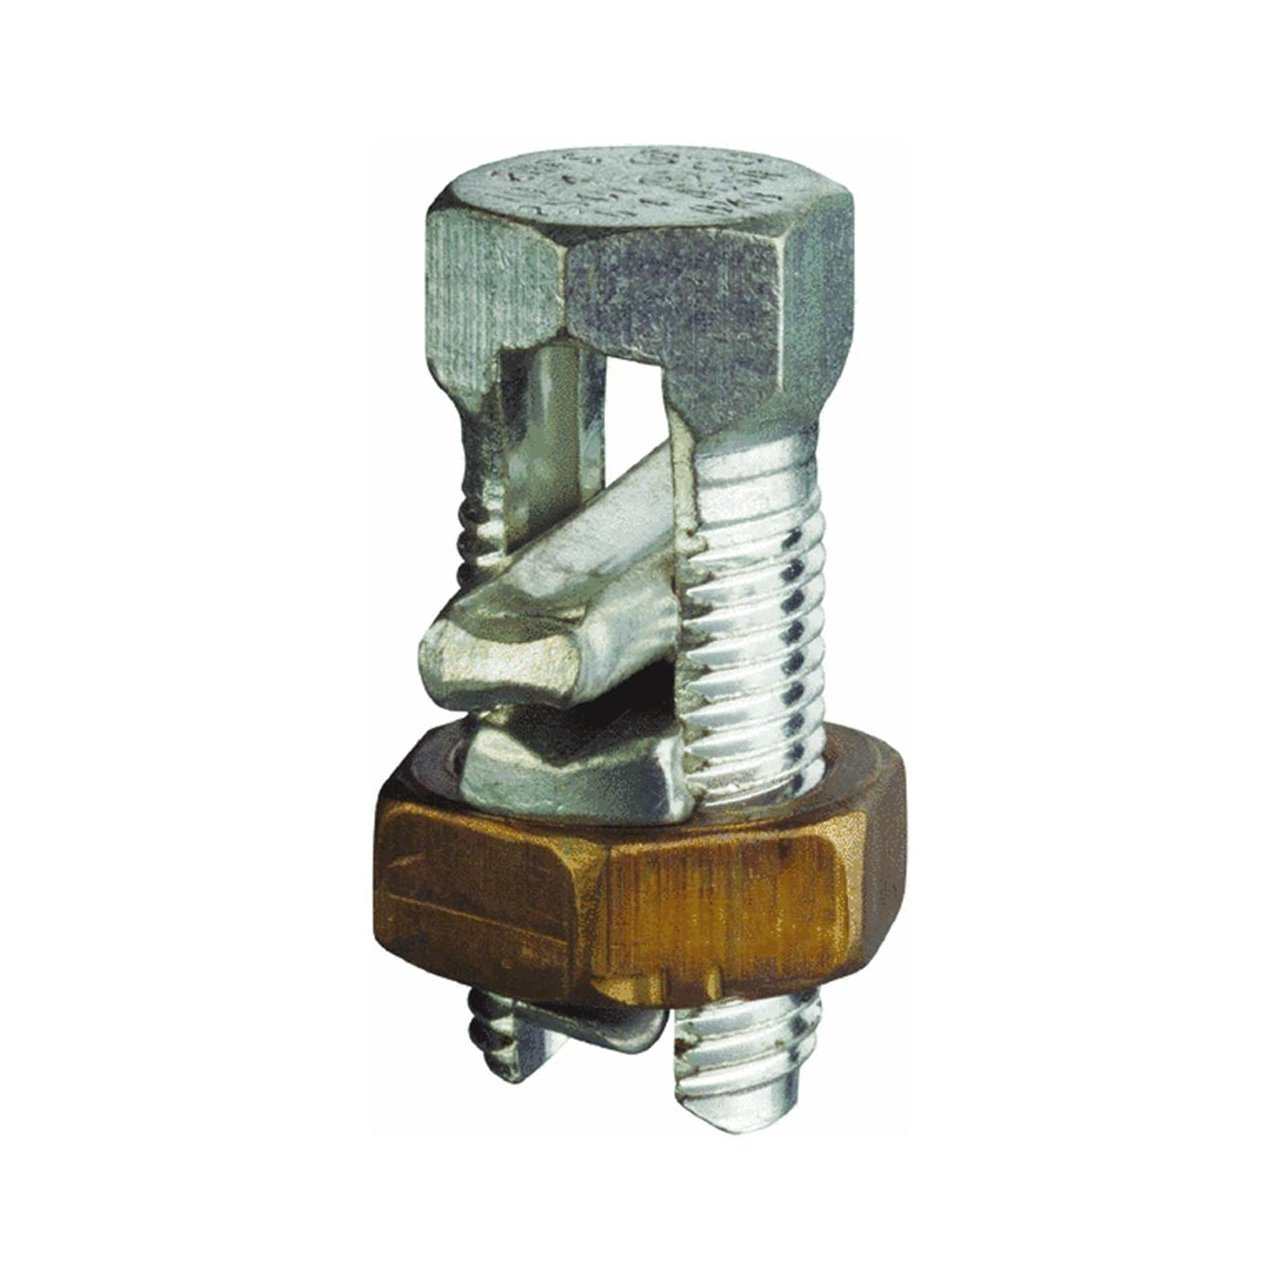 Thomas & Betts 4Hps Split Bolt Connector BLB4HPS 510673